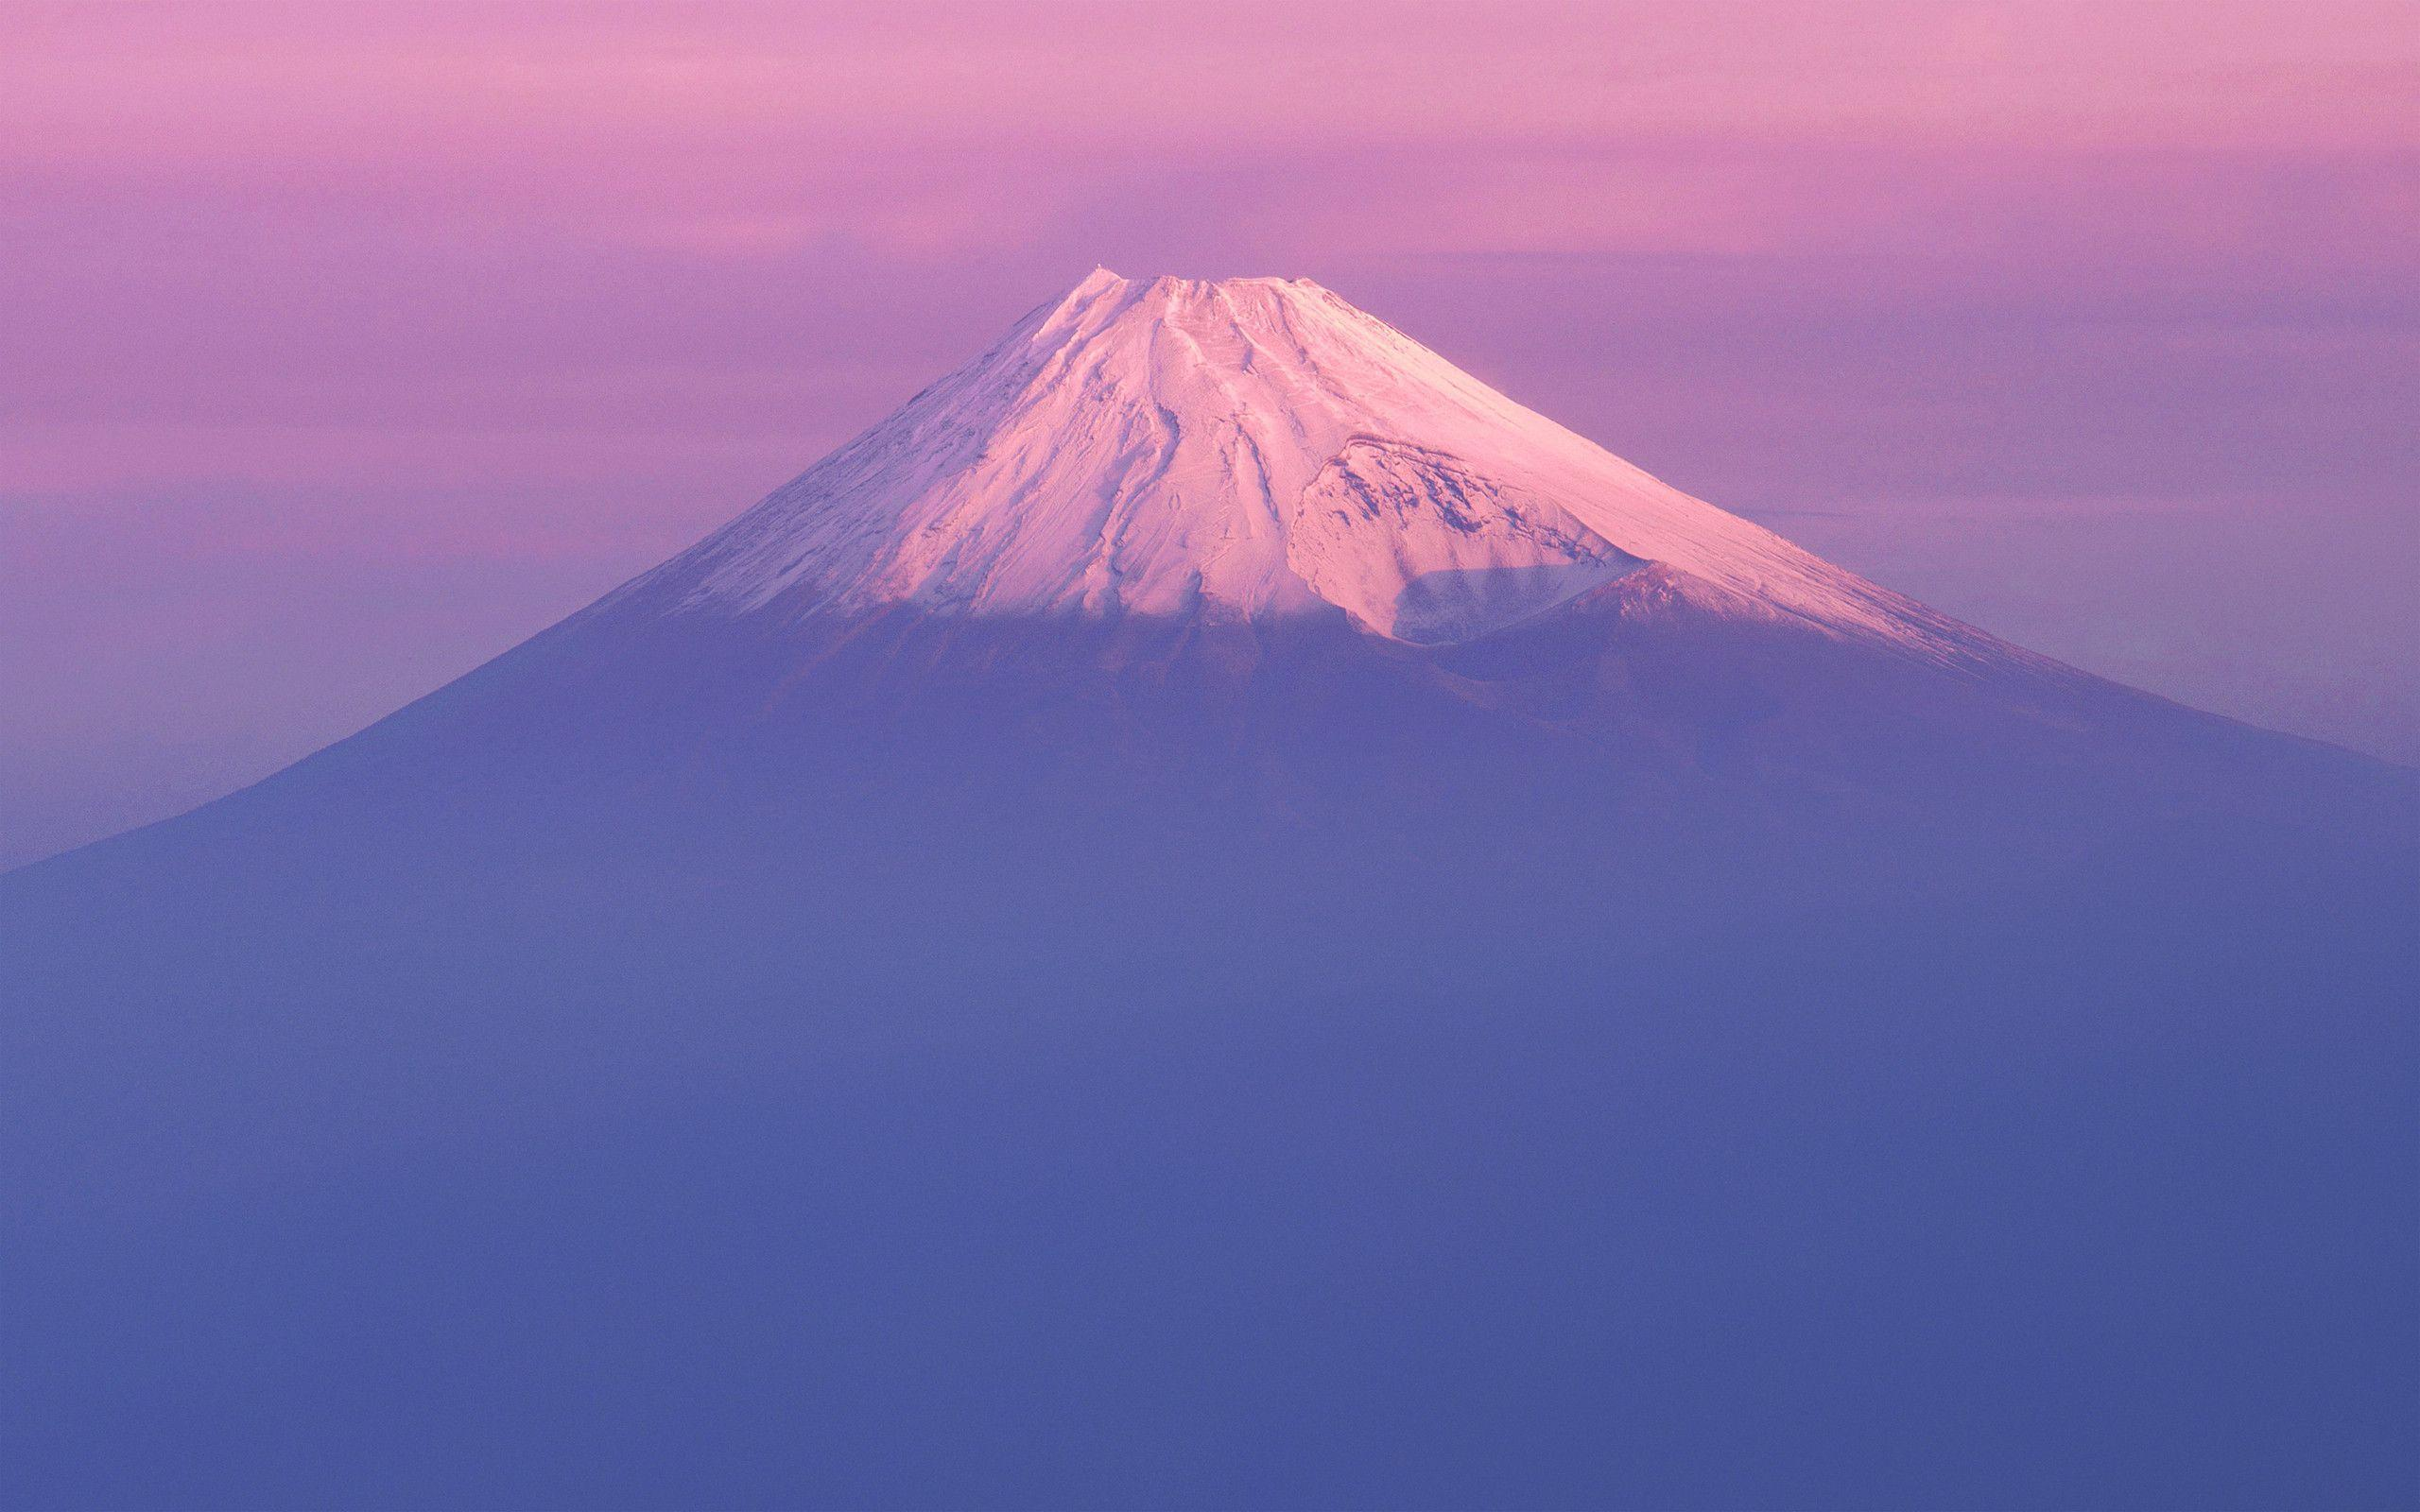 Mac OS X 10.7 Lion Fuji Mountain Wallpapers